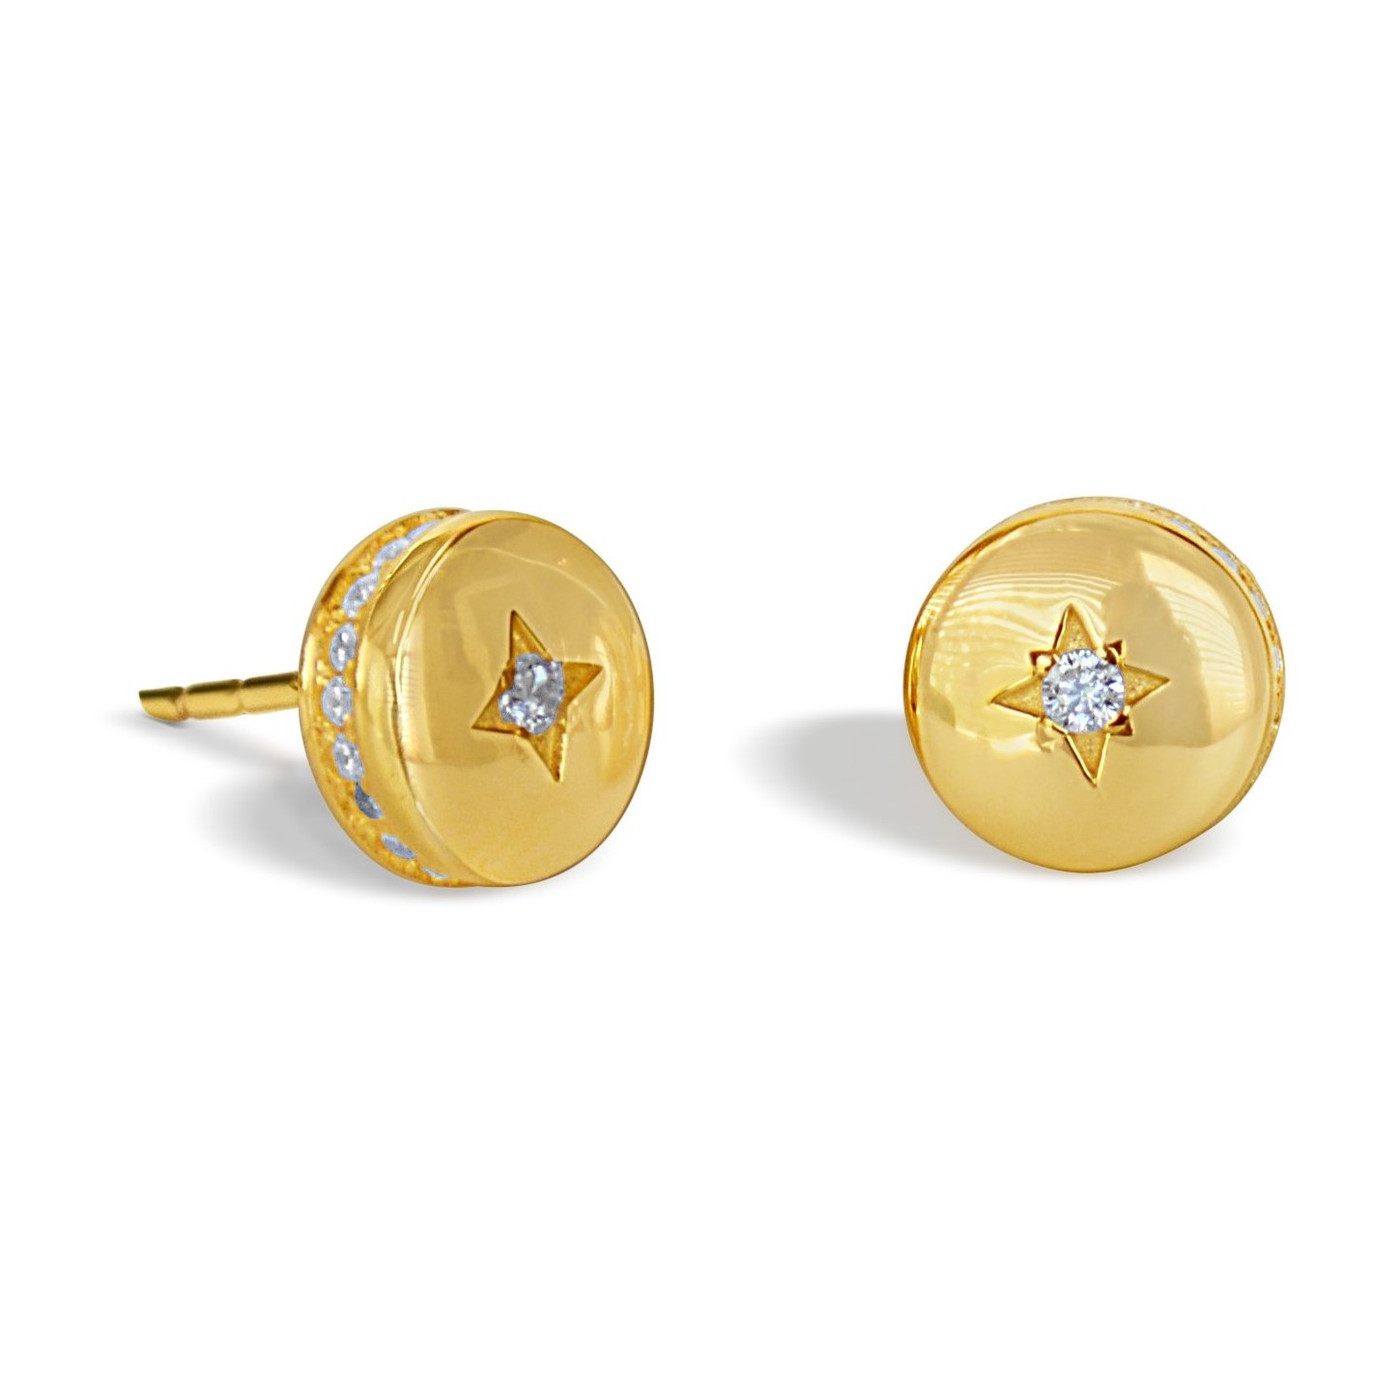 18K Gold over Sterling Silver Circle Starlight Studs Earrings